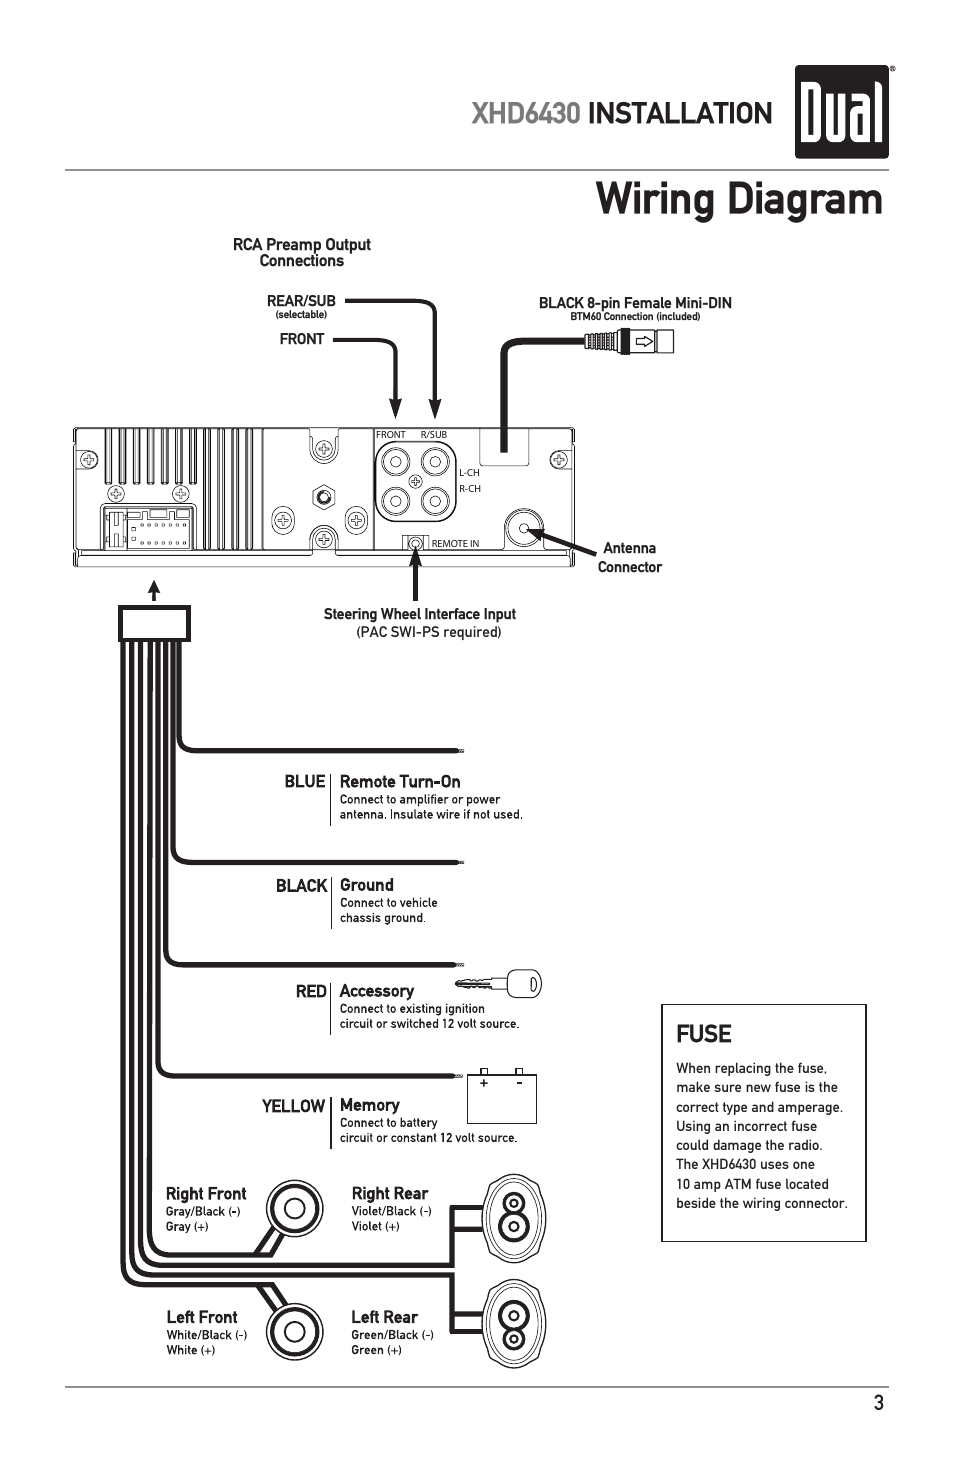 wiring diagram  xhd6430 installation  fuse